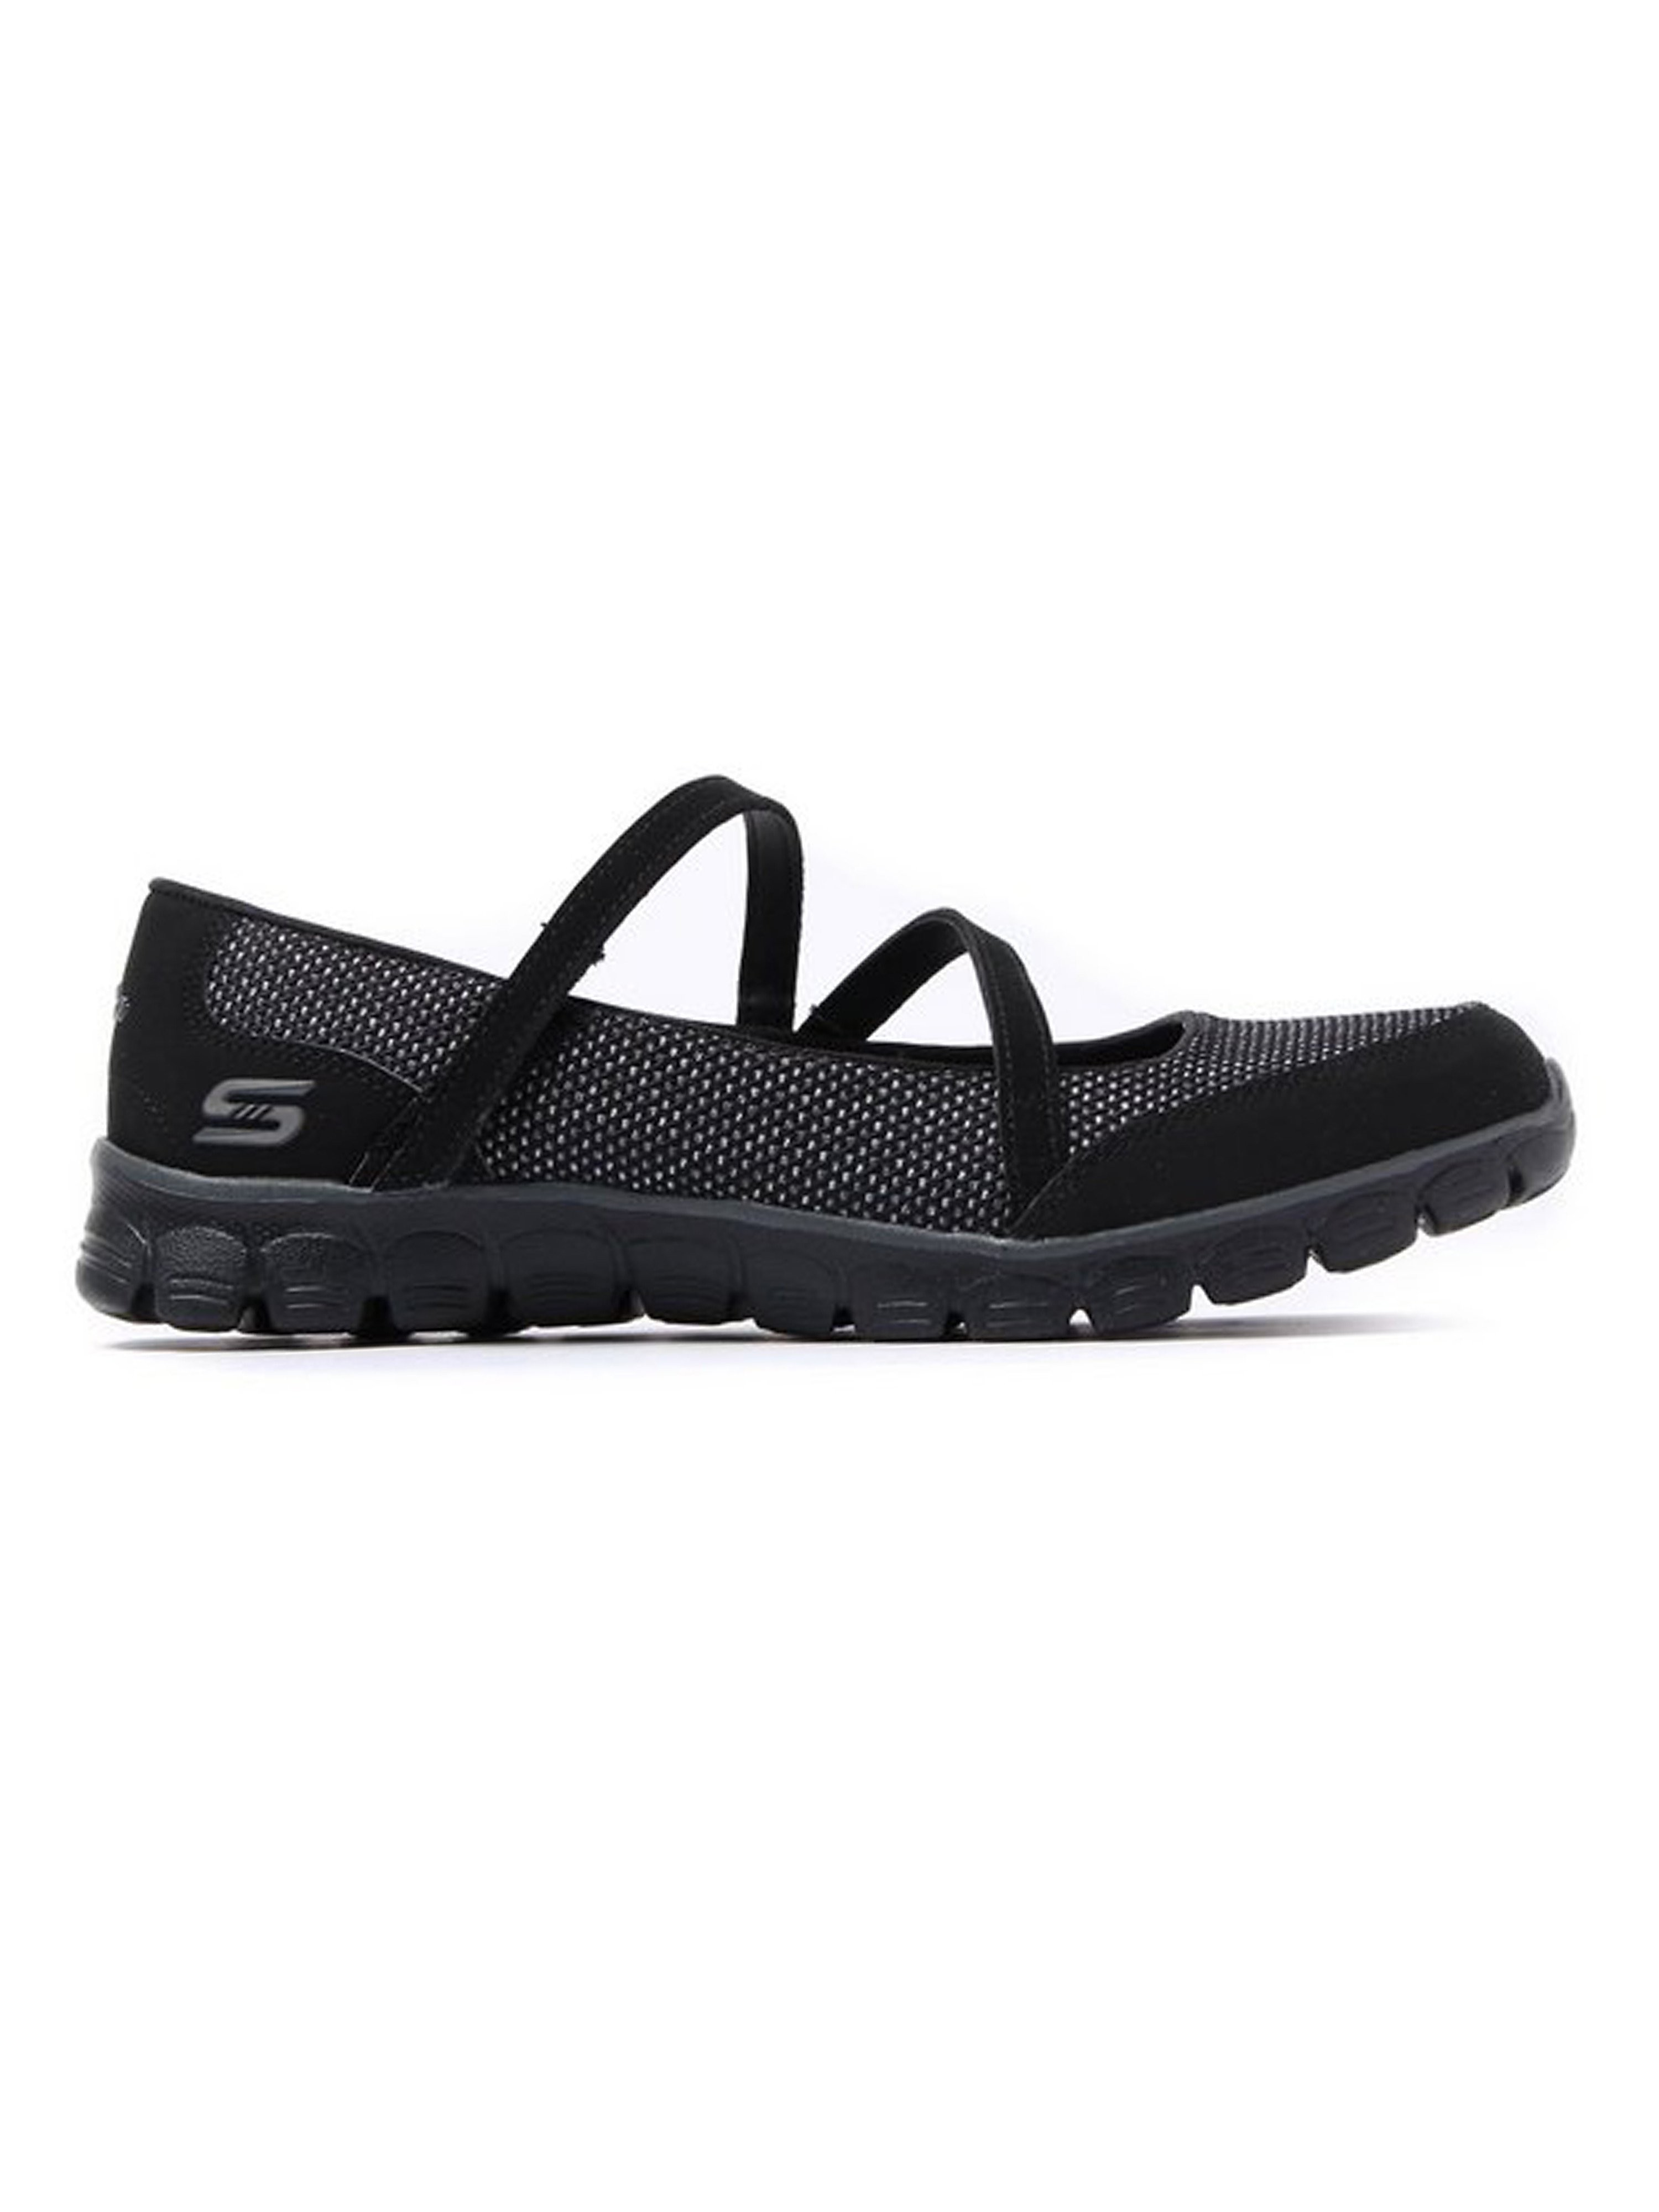 Skechers Women's EZ Flex 3.0 Stop Over Cordura Trainers - Black